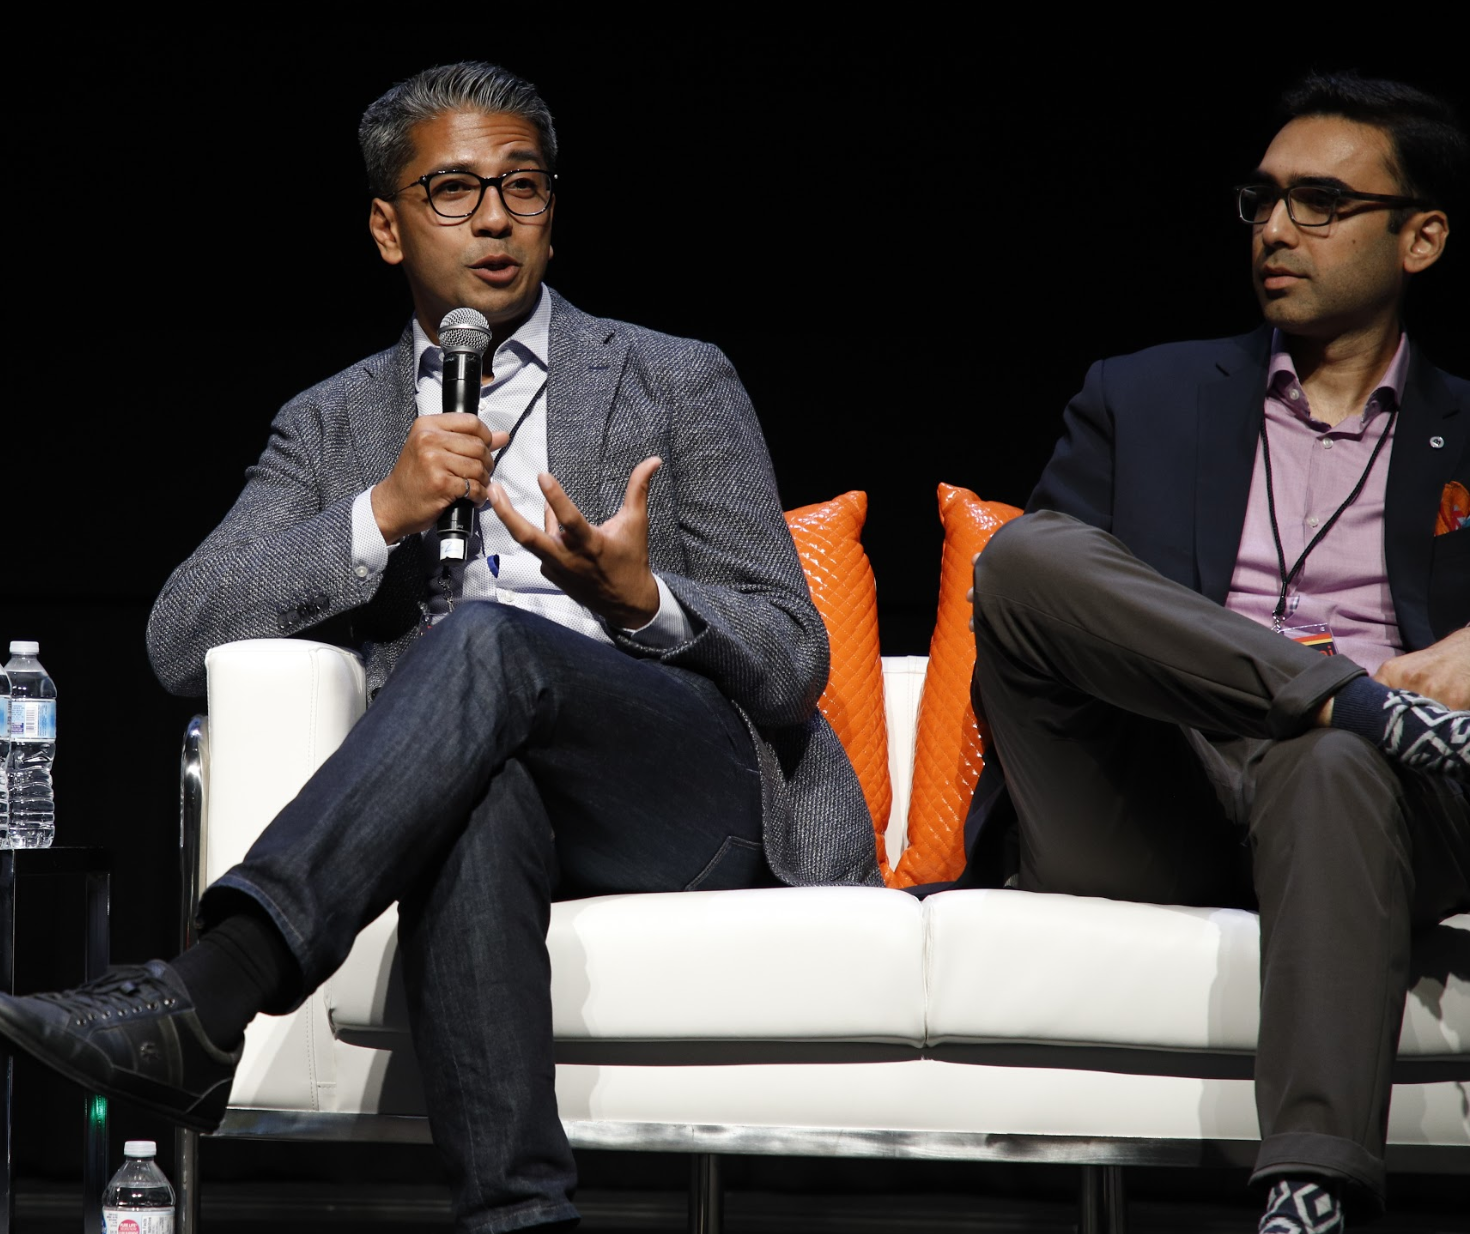 Pavel (left) with fellow panelist Sami Ahmed (right) from BMO @ ABD 2019 Conference in Toronto.